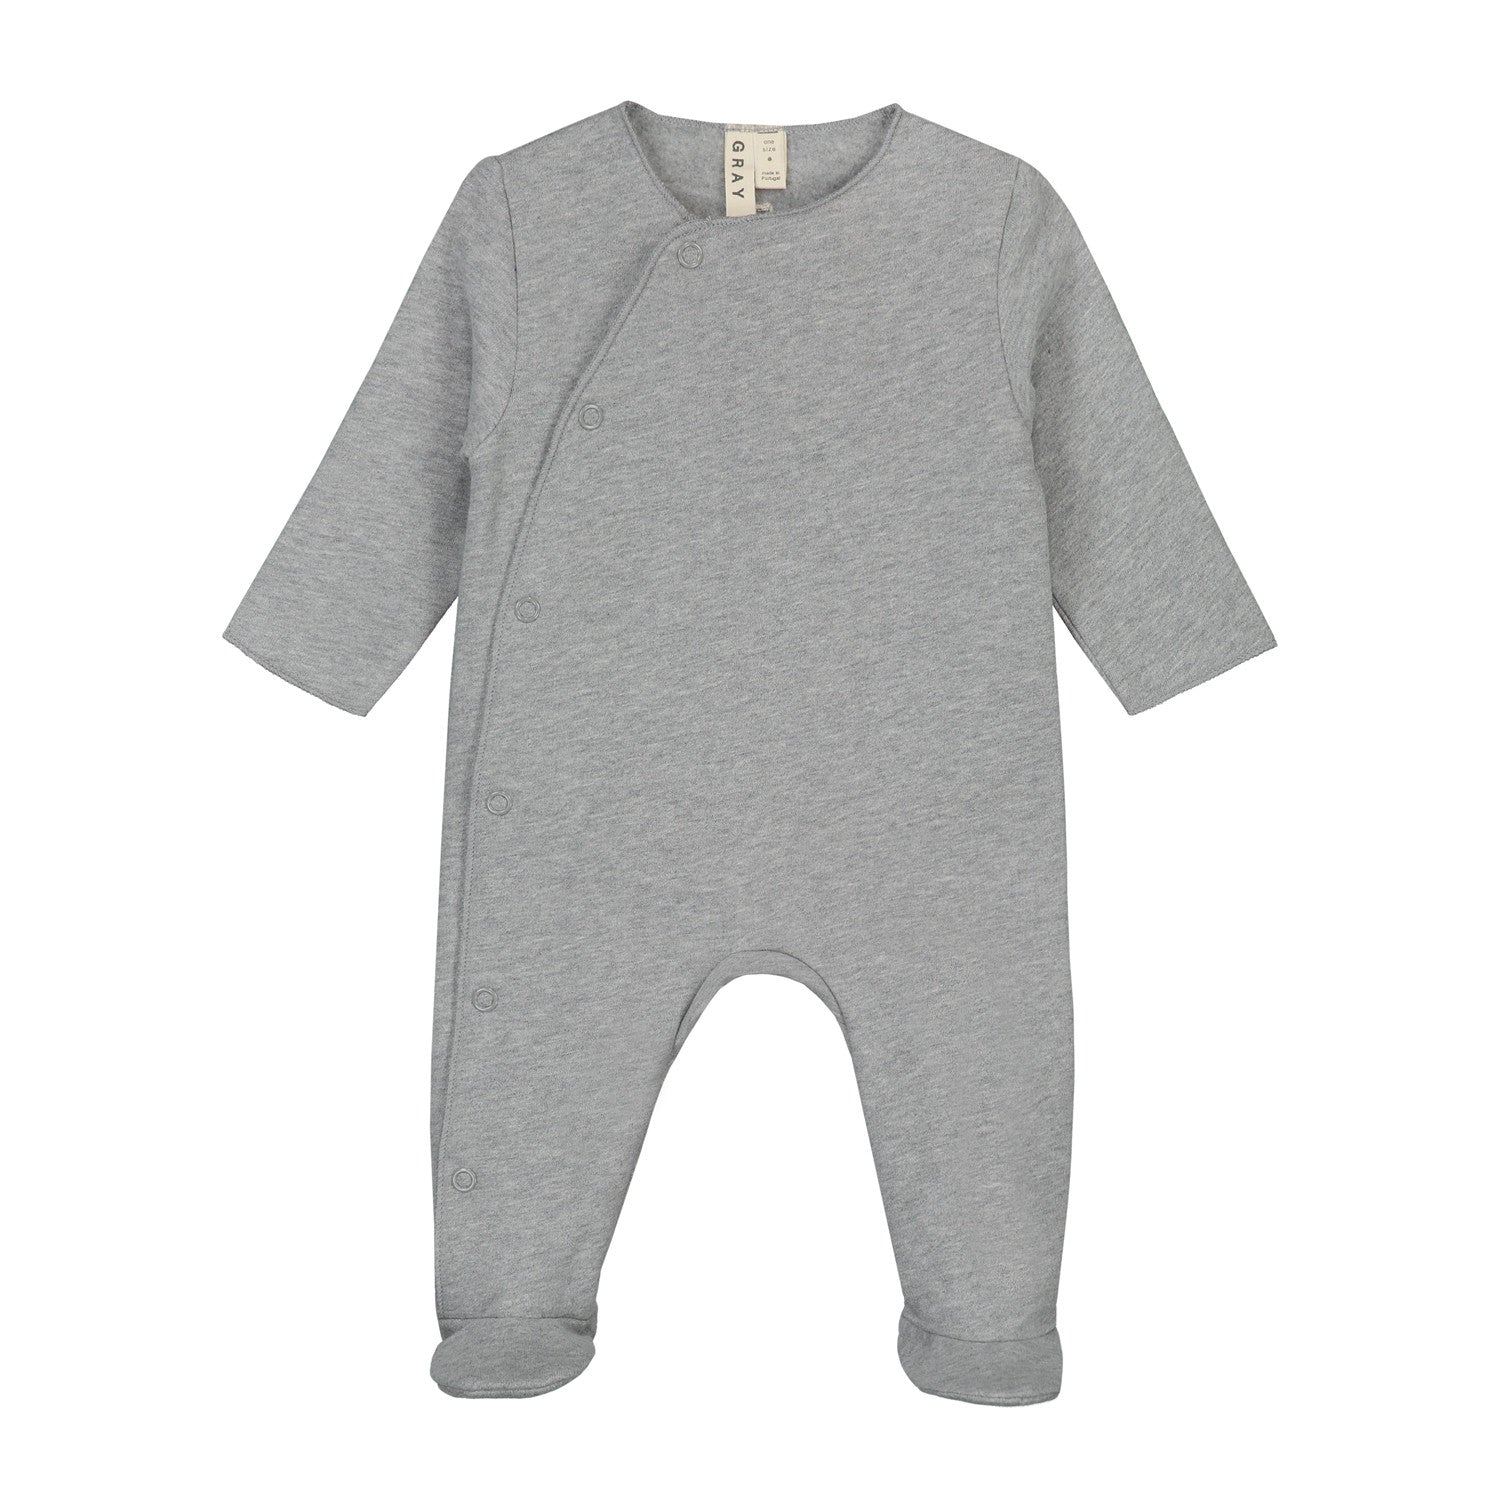 Gray Label Grey Melange Newborn Suit